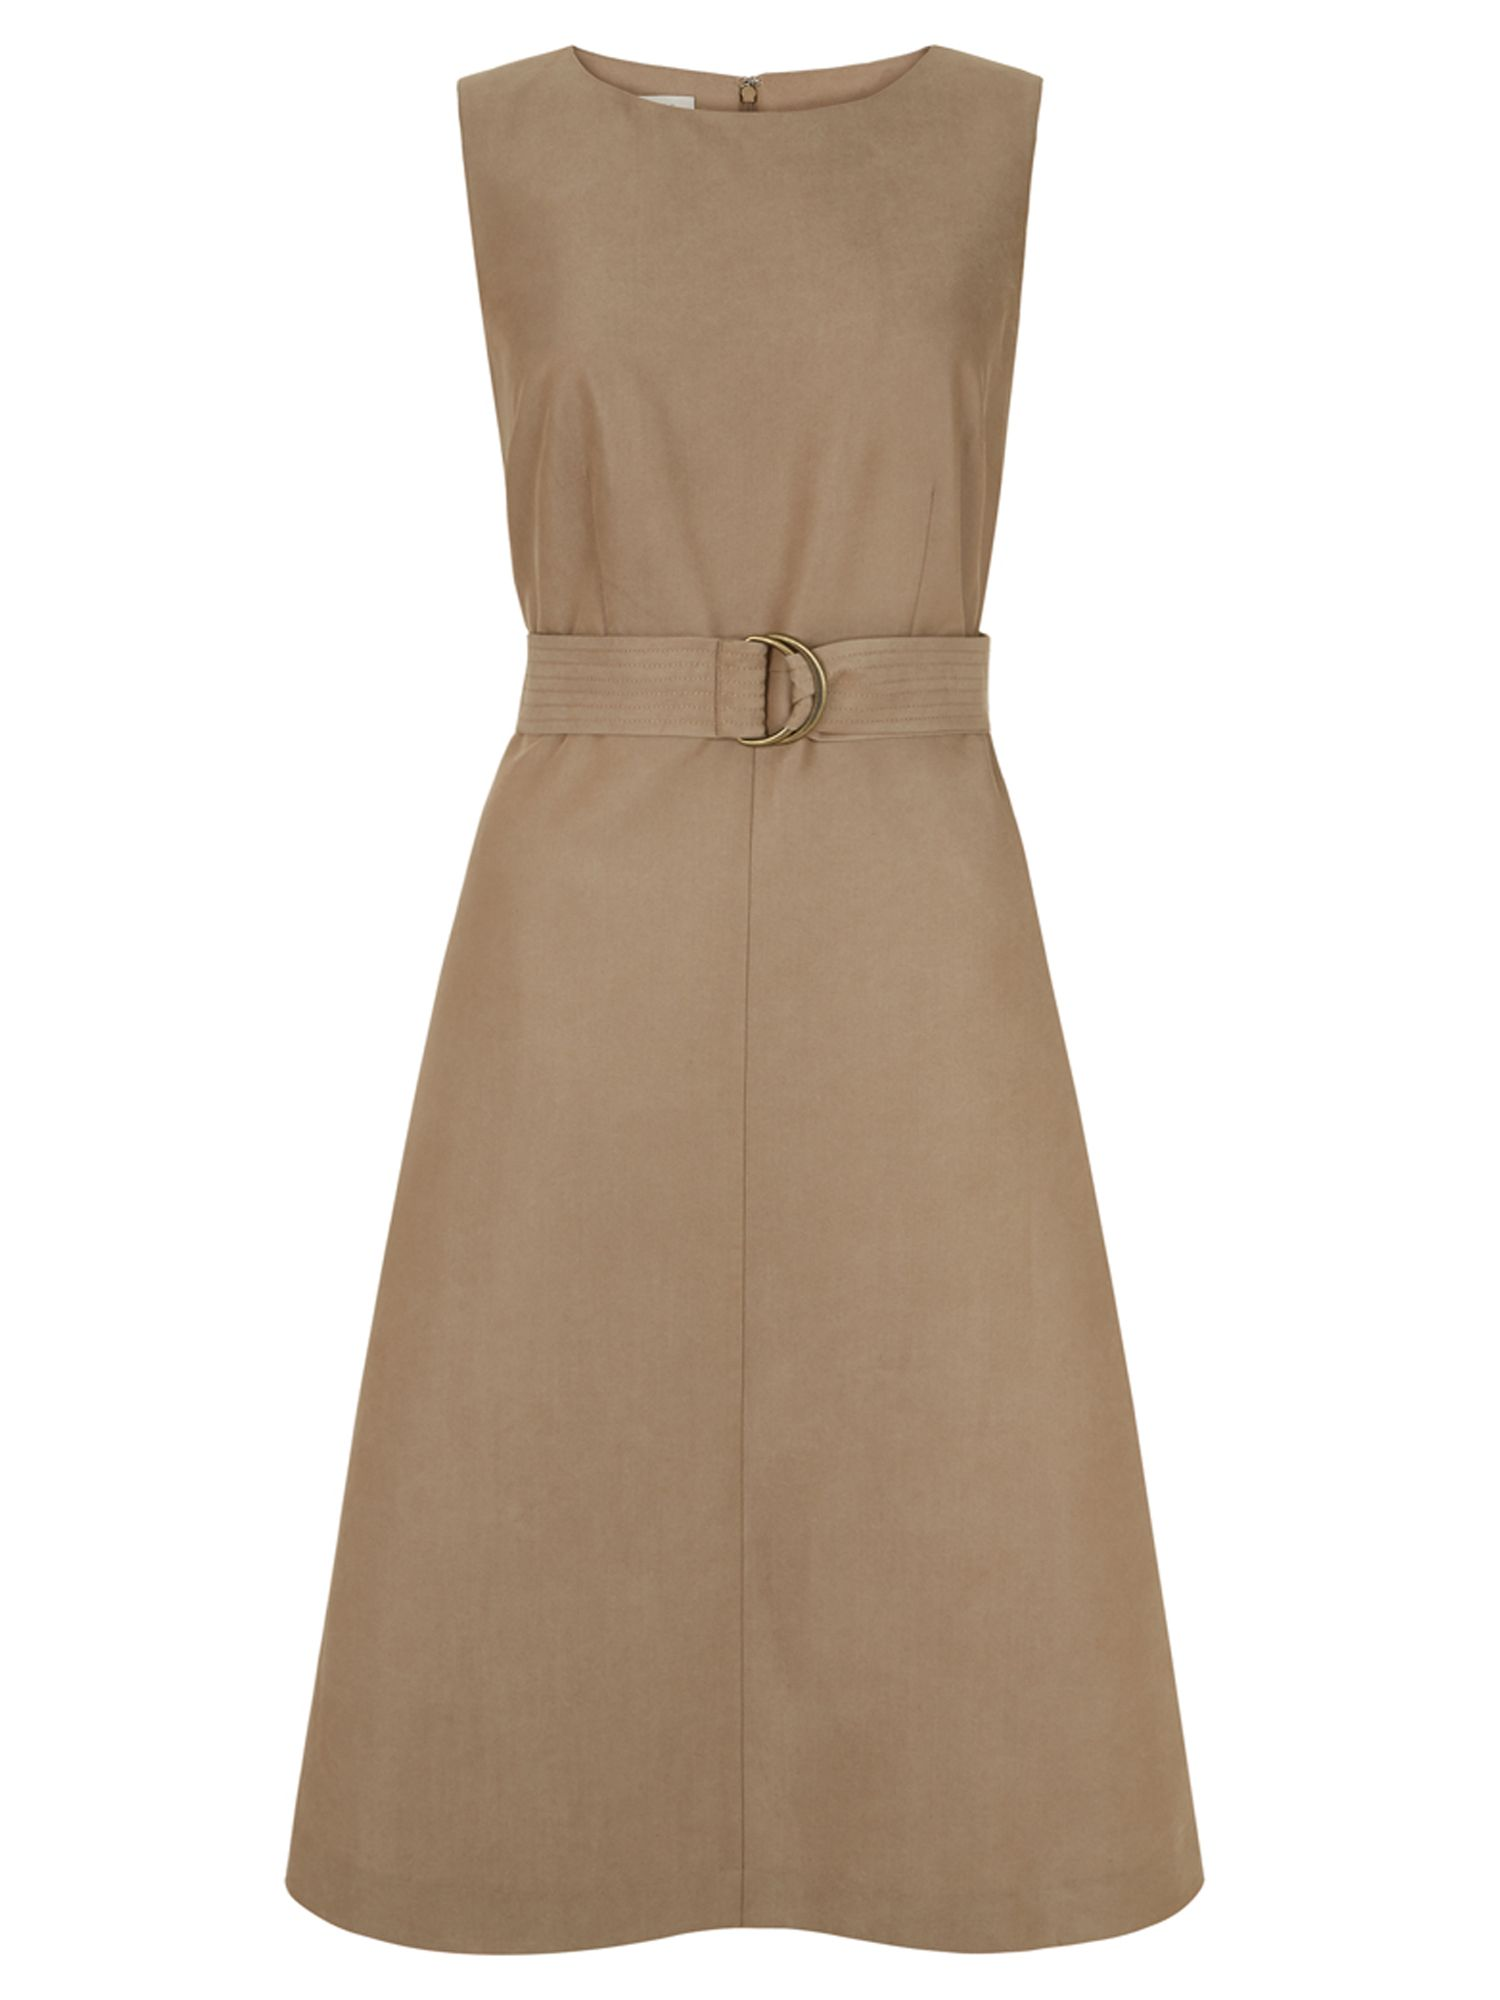 Hobbs Ella Dress, Sand